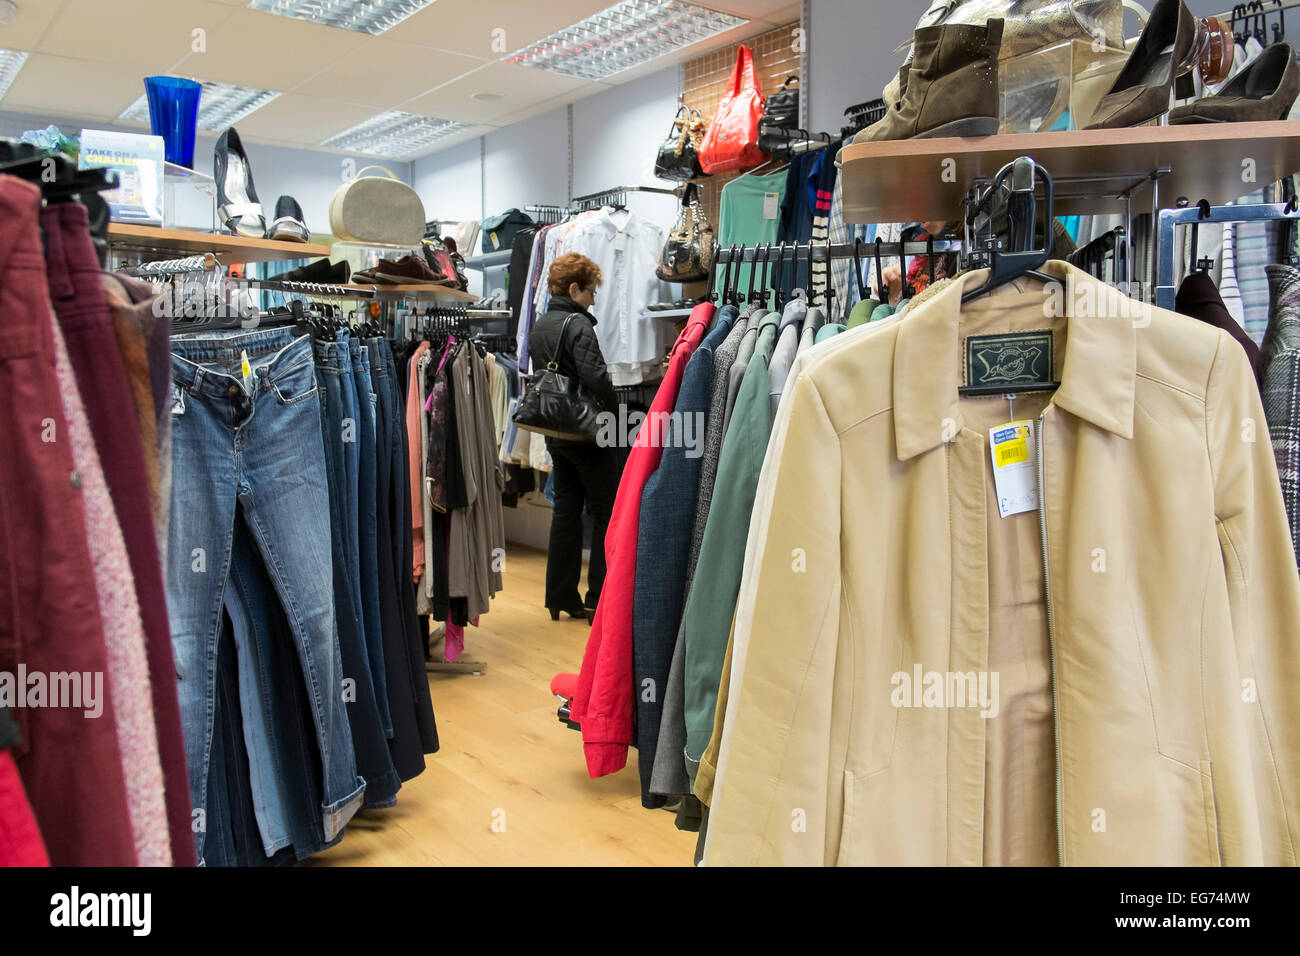 The interior of a charity shop. - Stock Image